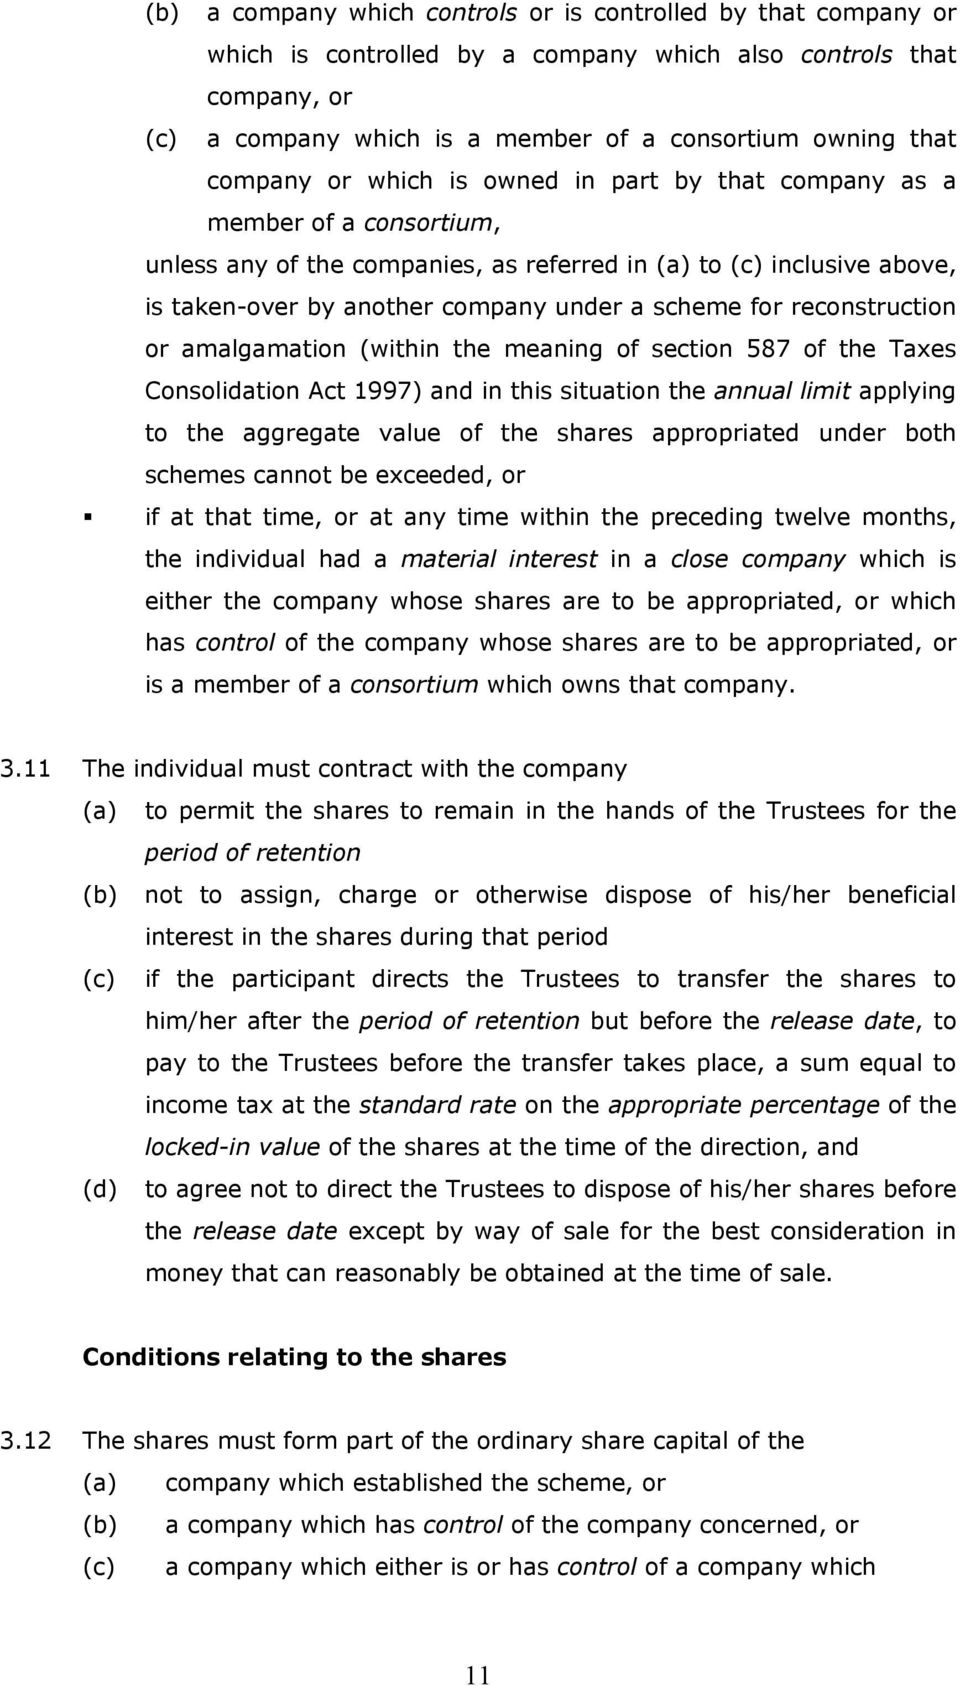 for reconstruction or amalgamation (within the meaning of section 587 of the Taxes Consolidation Act 1997) and in this situation the annual limit applying to the aggregate value of the shares